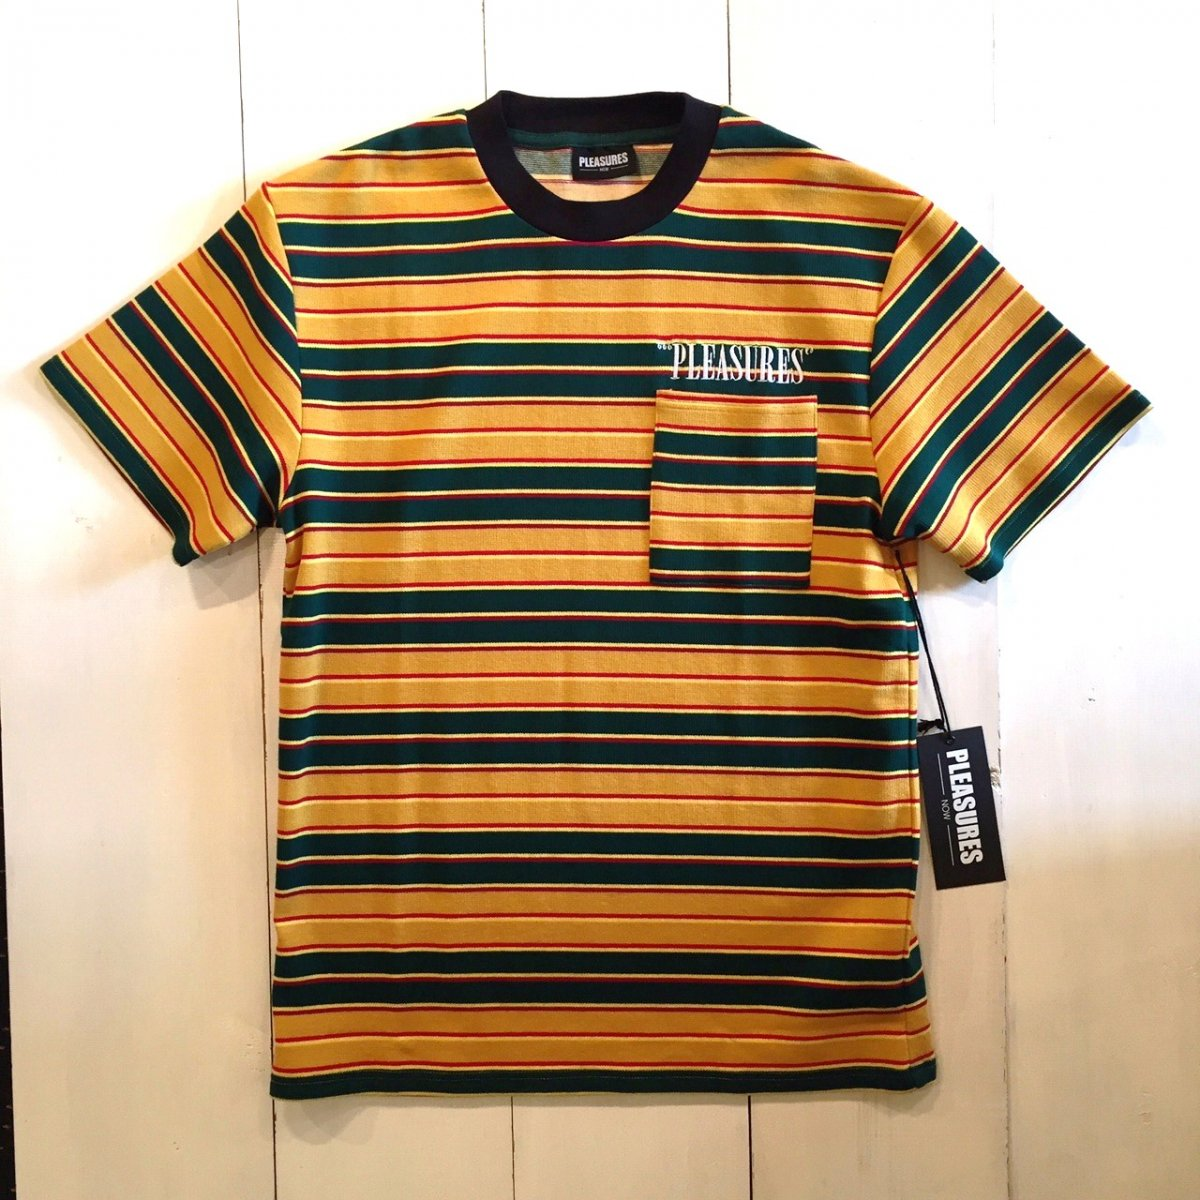 <img class='new_mark_img1' src='//img.shop-pro.jp/img/new/icons3.gif' style='border:none;display:inline;margin:0px;padding:0px;width:auto;' />PLEASURES プレジャーズ / Tシャツ CHAINSMOKE STRIPE SHIRT 【YELLOW / GREEN】